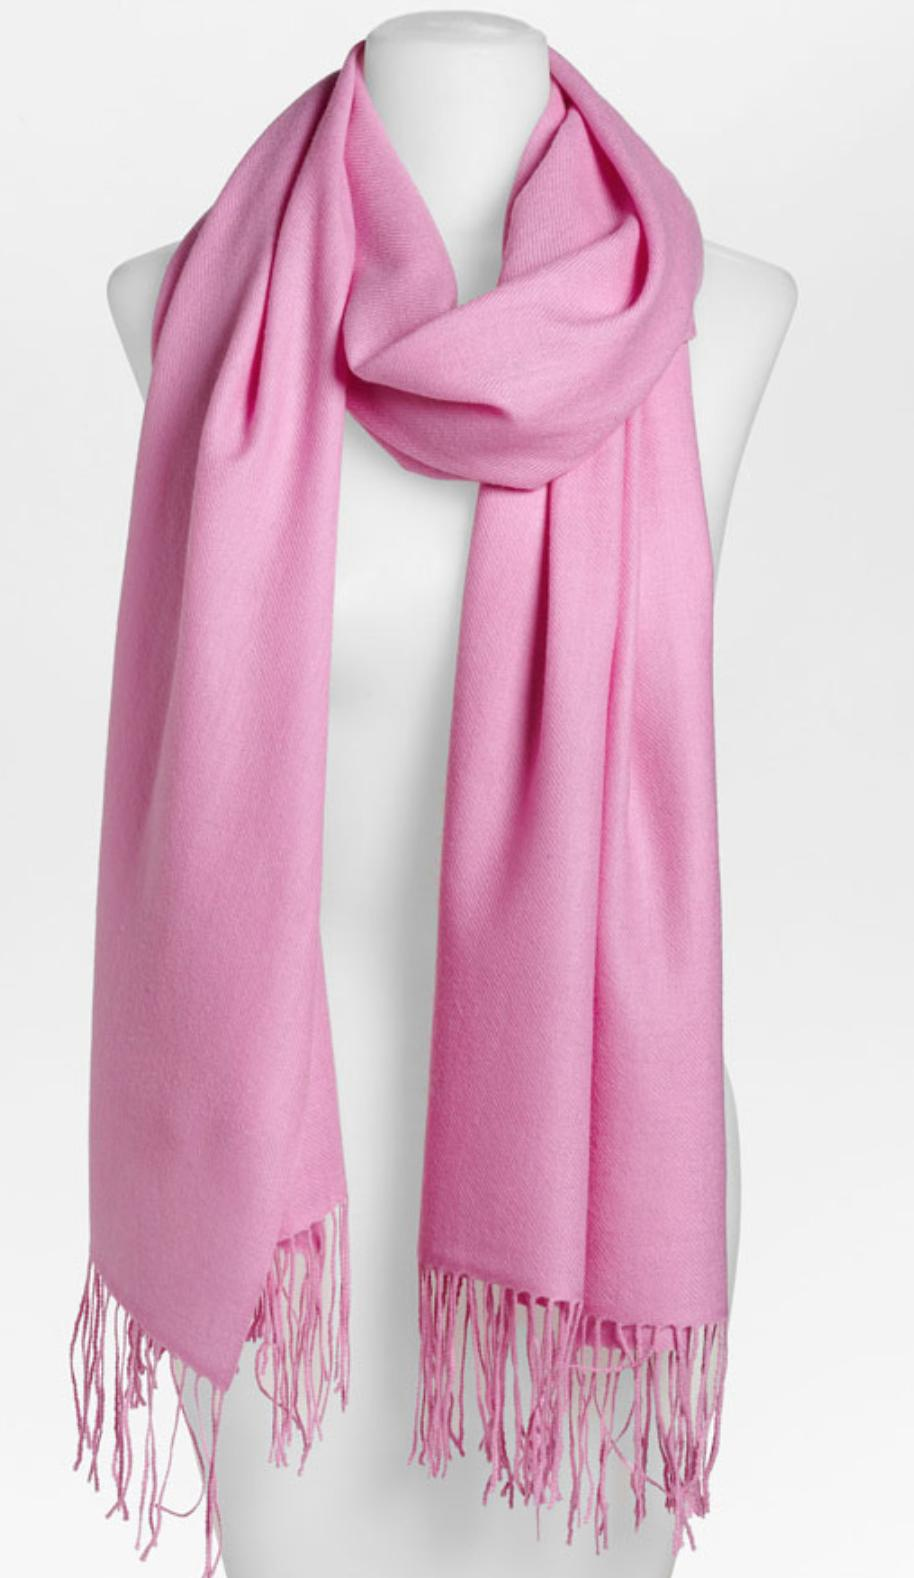 Tissue Weight Wool & Cashmere Wrap On Sale @ Nordstrom